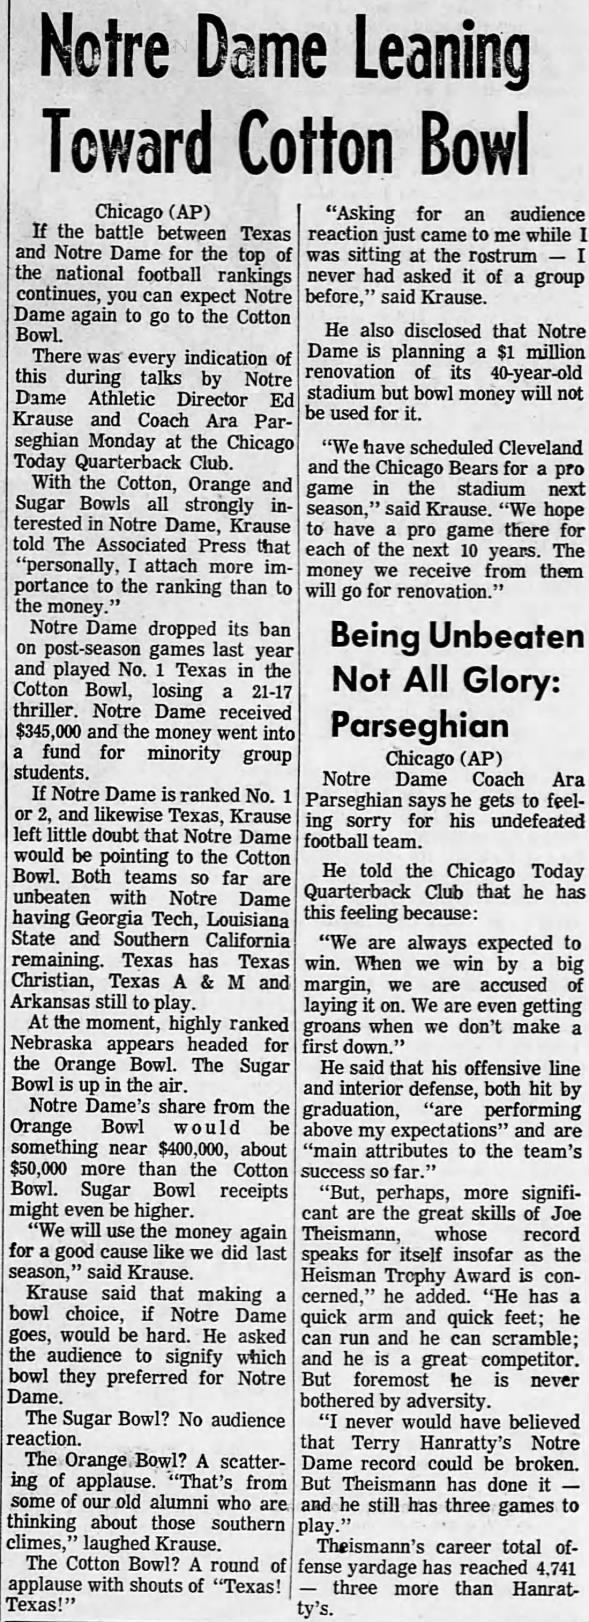 1970.11.09 Notre Dame to Cotton Bowl?